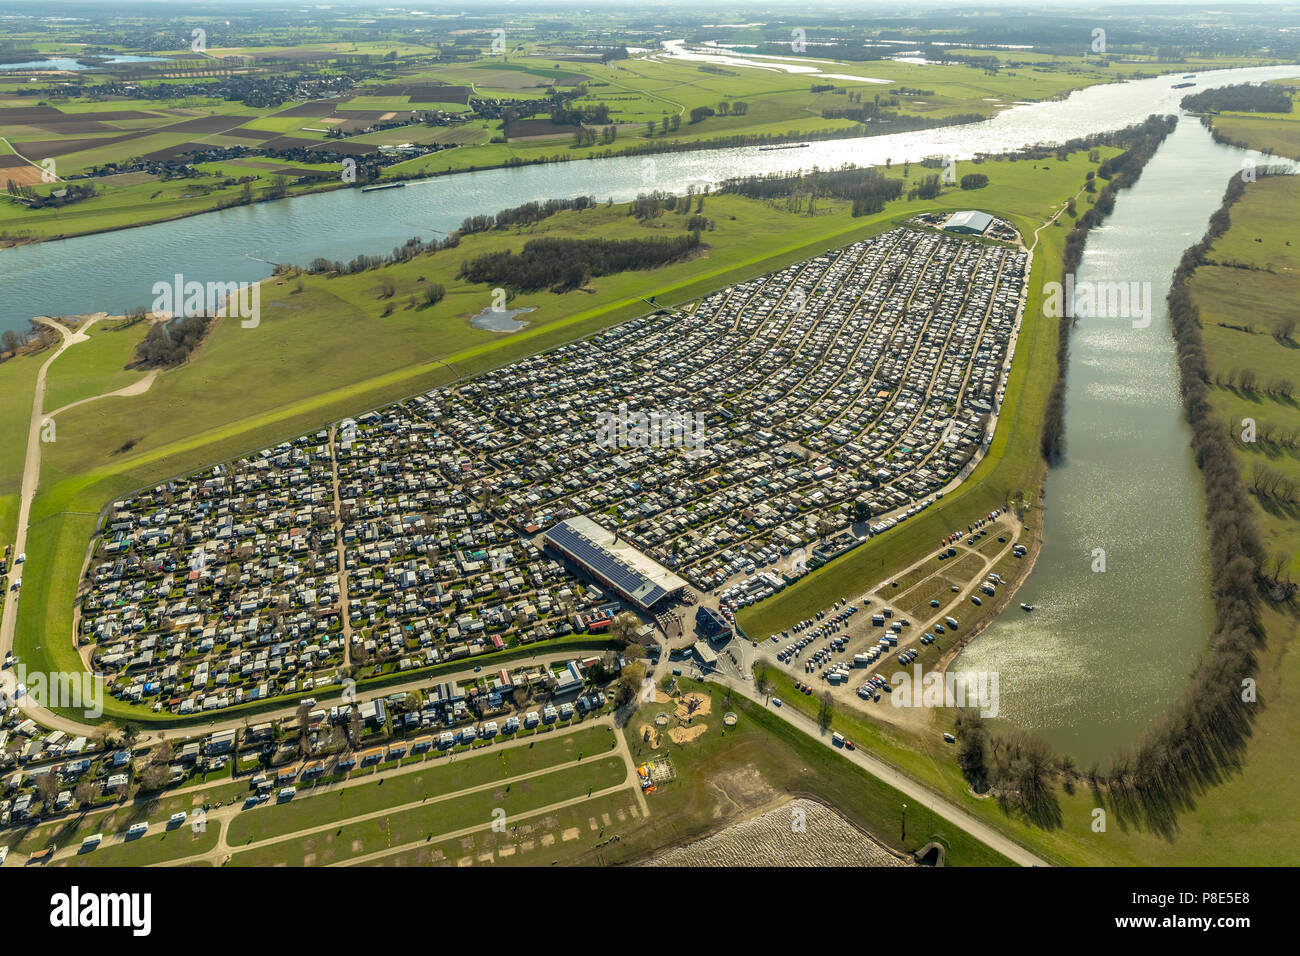 Aerial view, campground Grav-Insel am Niederrhein, largest camping site in Germany, Wesel, Rhineland, North Rhine-Westphalia - Stock Image